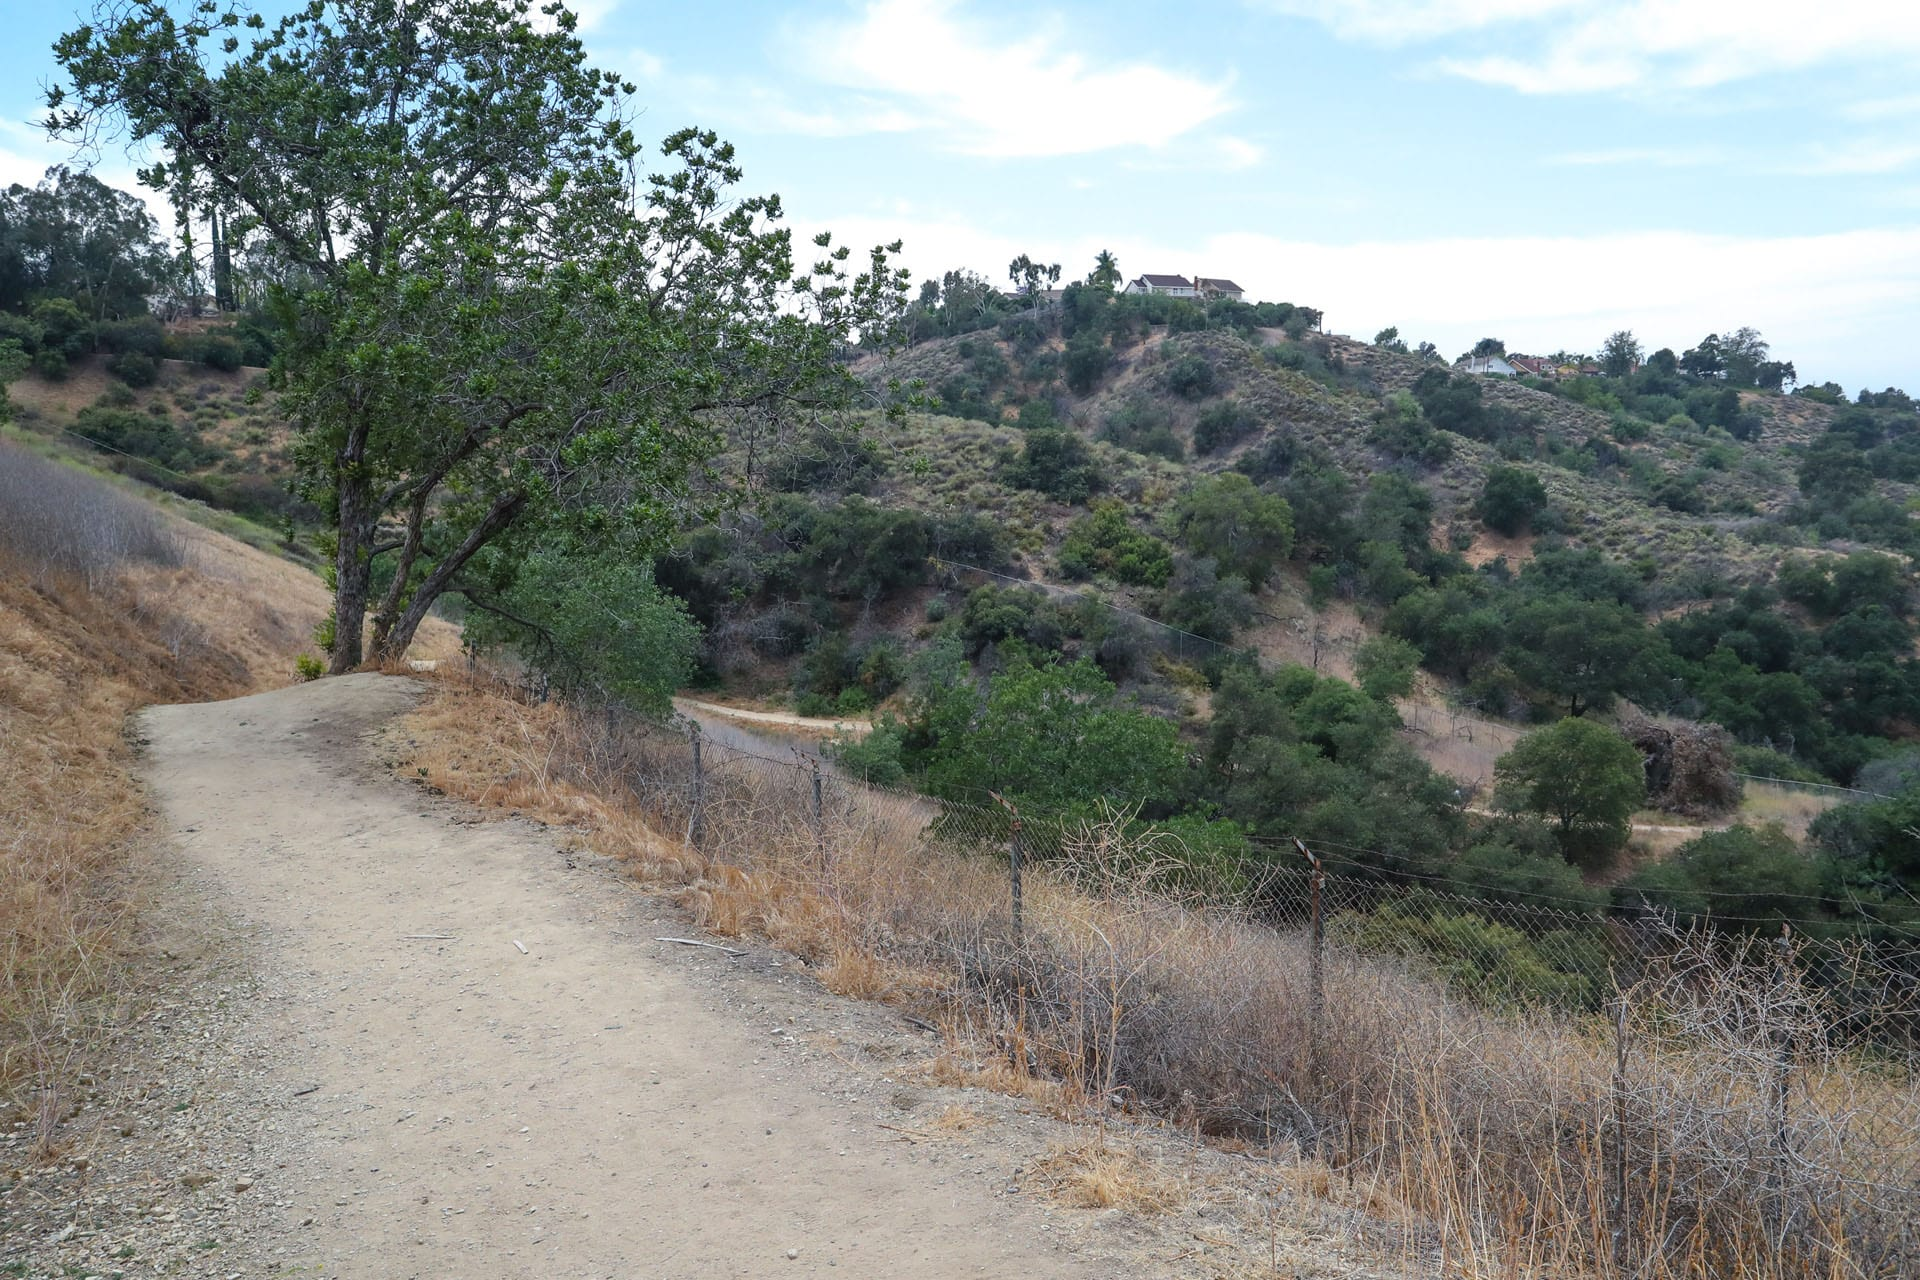 Trail on hillside